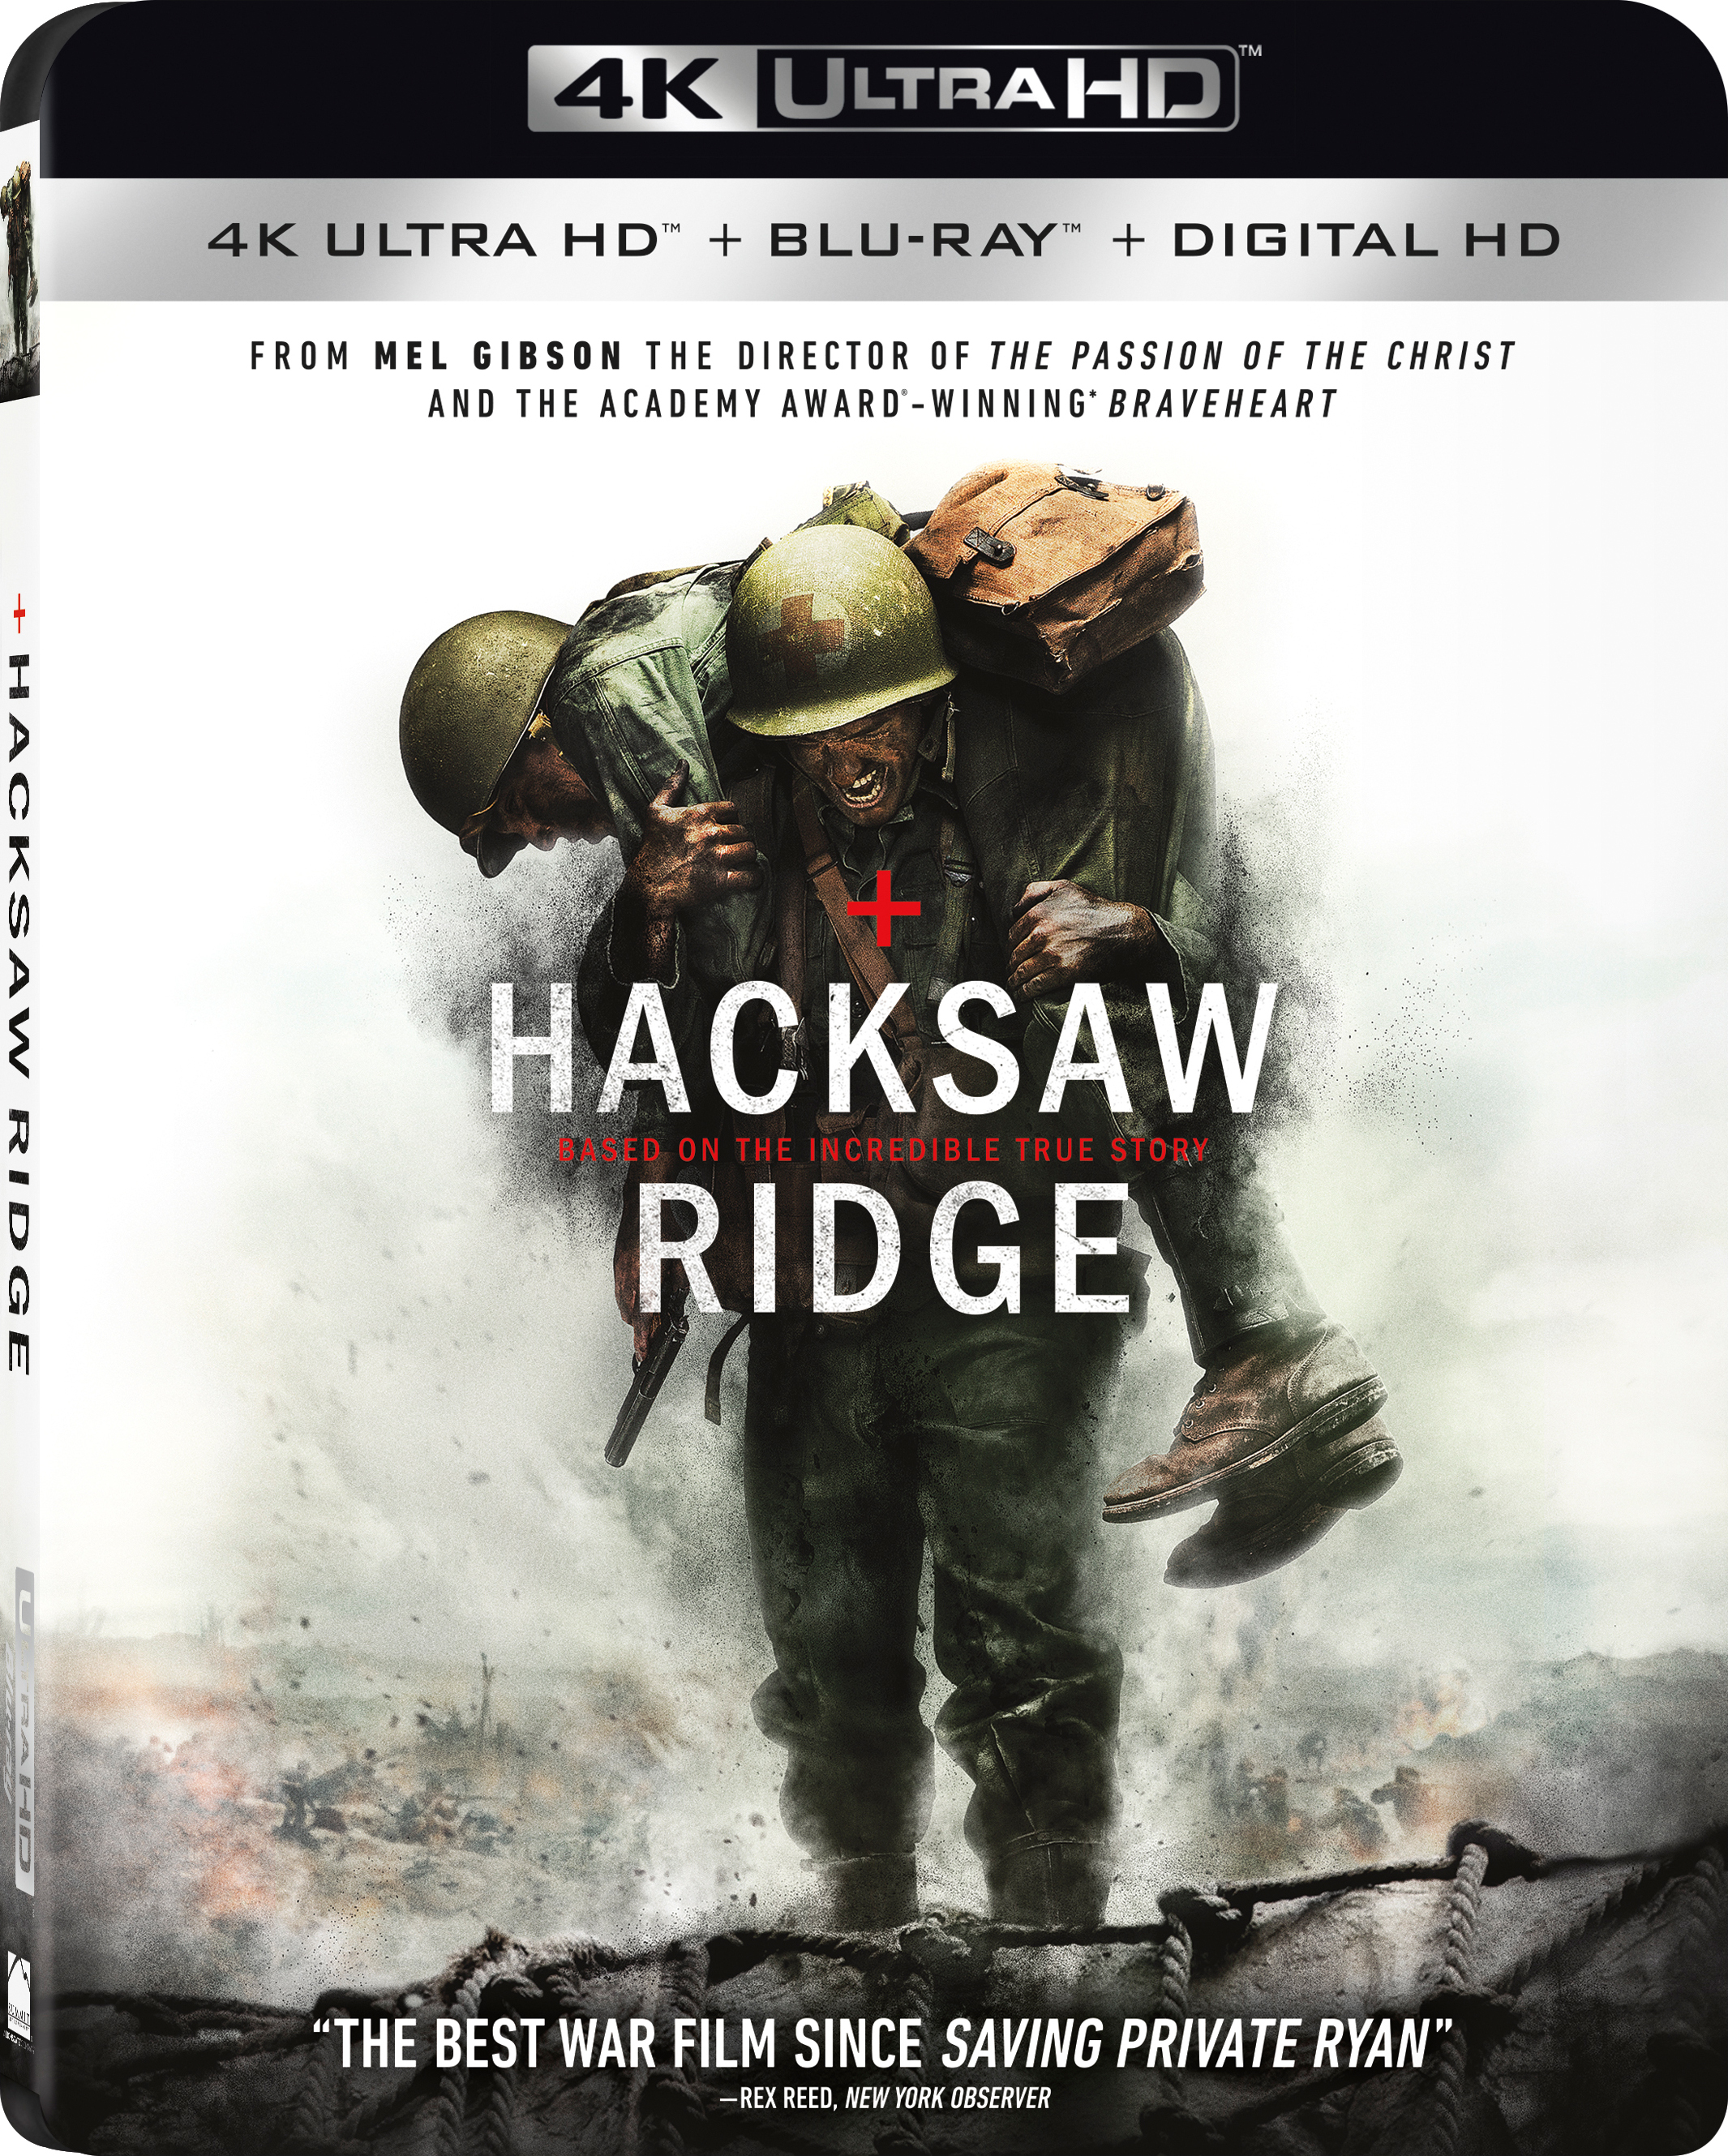 Hacksaw Ridge 4K (2016) 4K Ultra HD Blu-ray